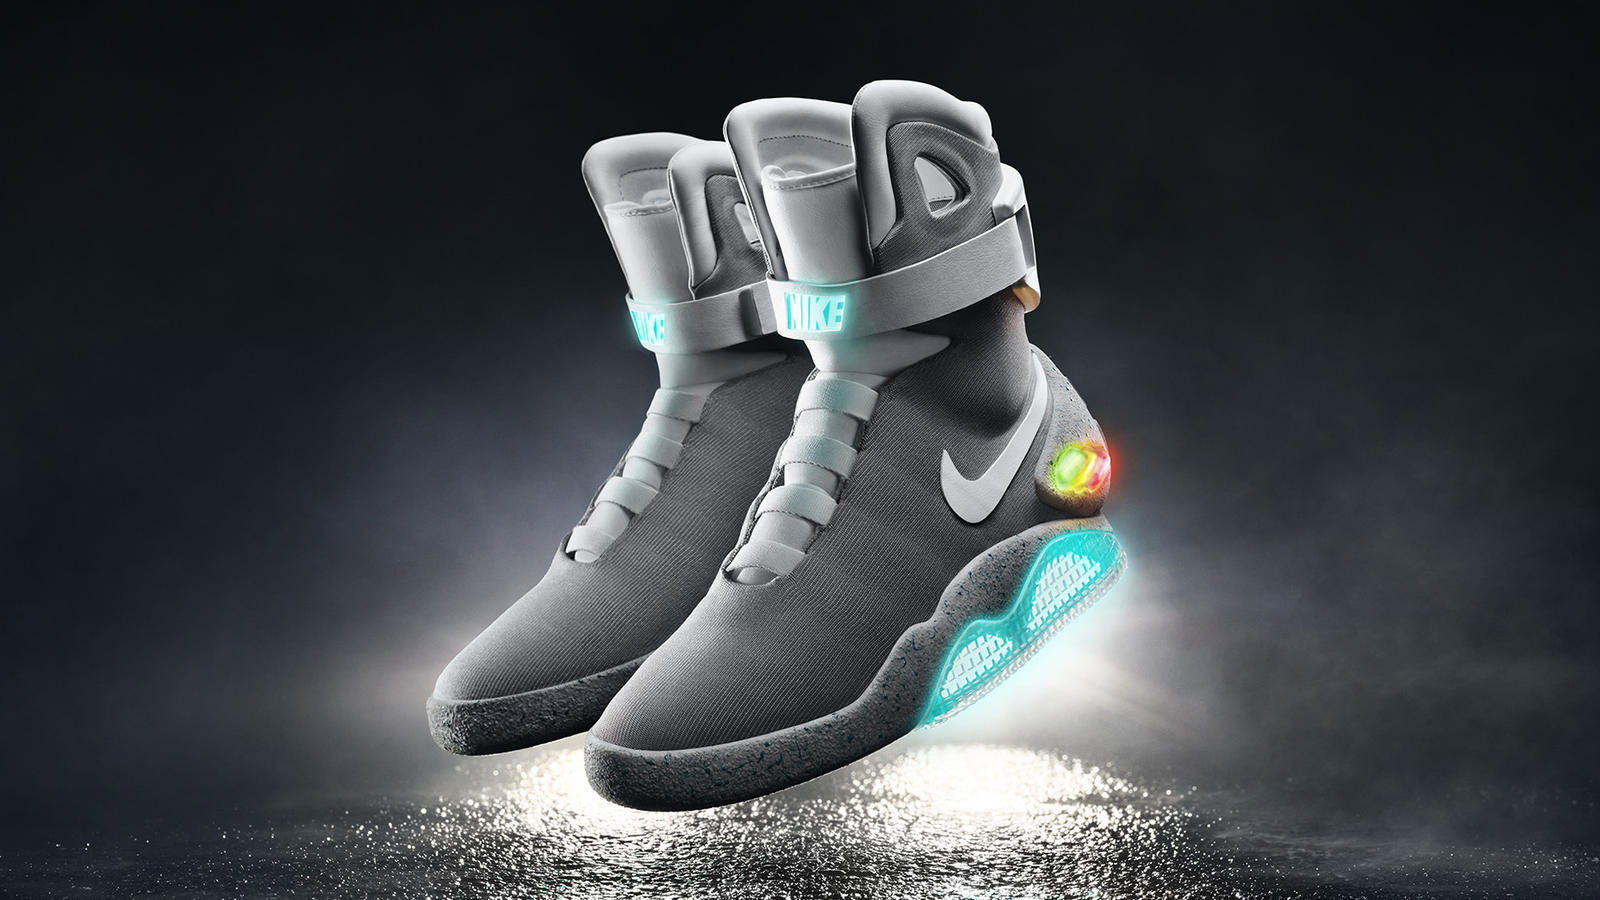 What is the market value of each Nike Mag edition now?